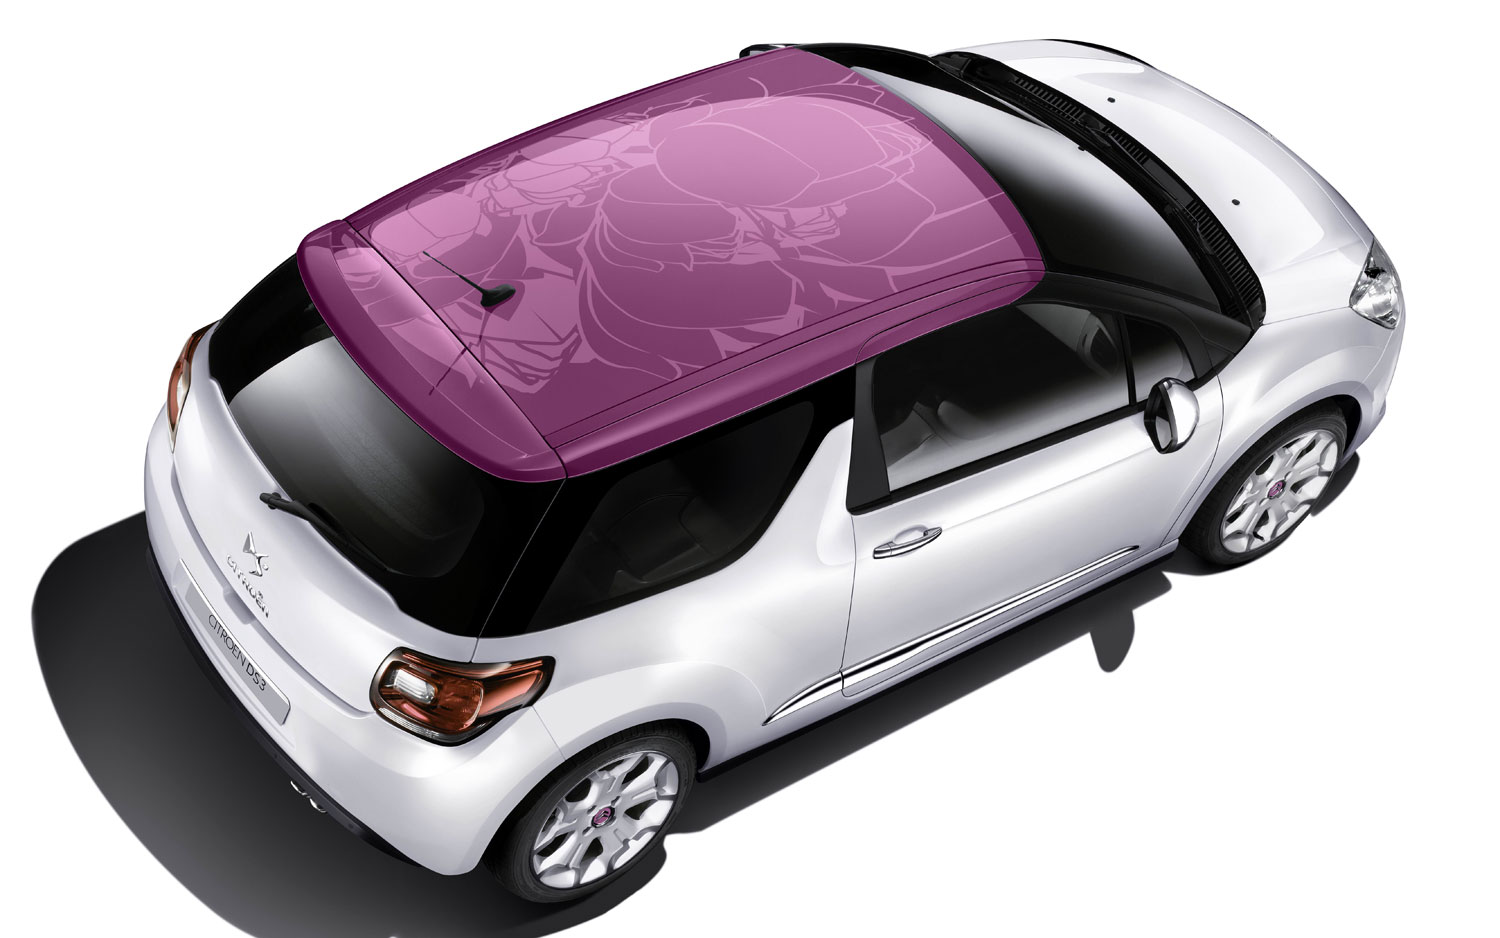 Citroen Ds3 Fuchsia Flower Roof1